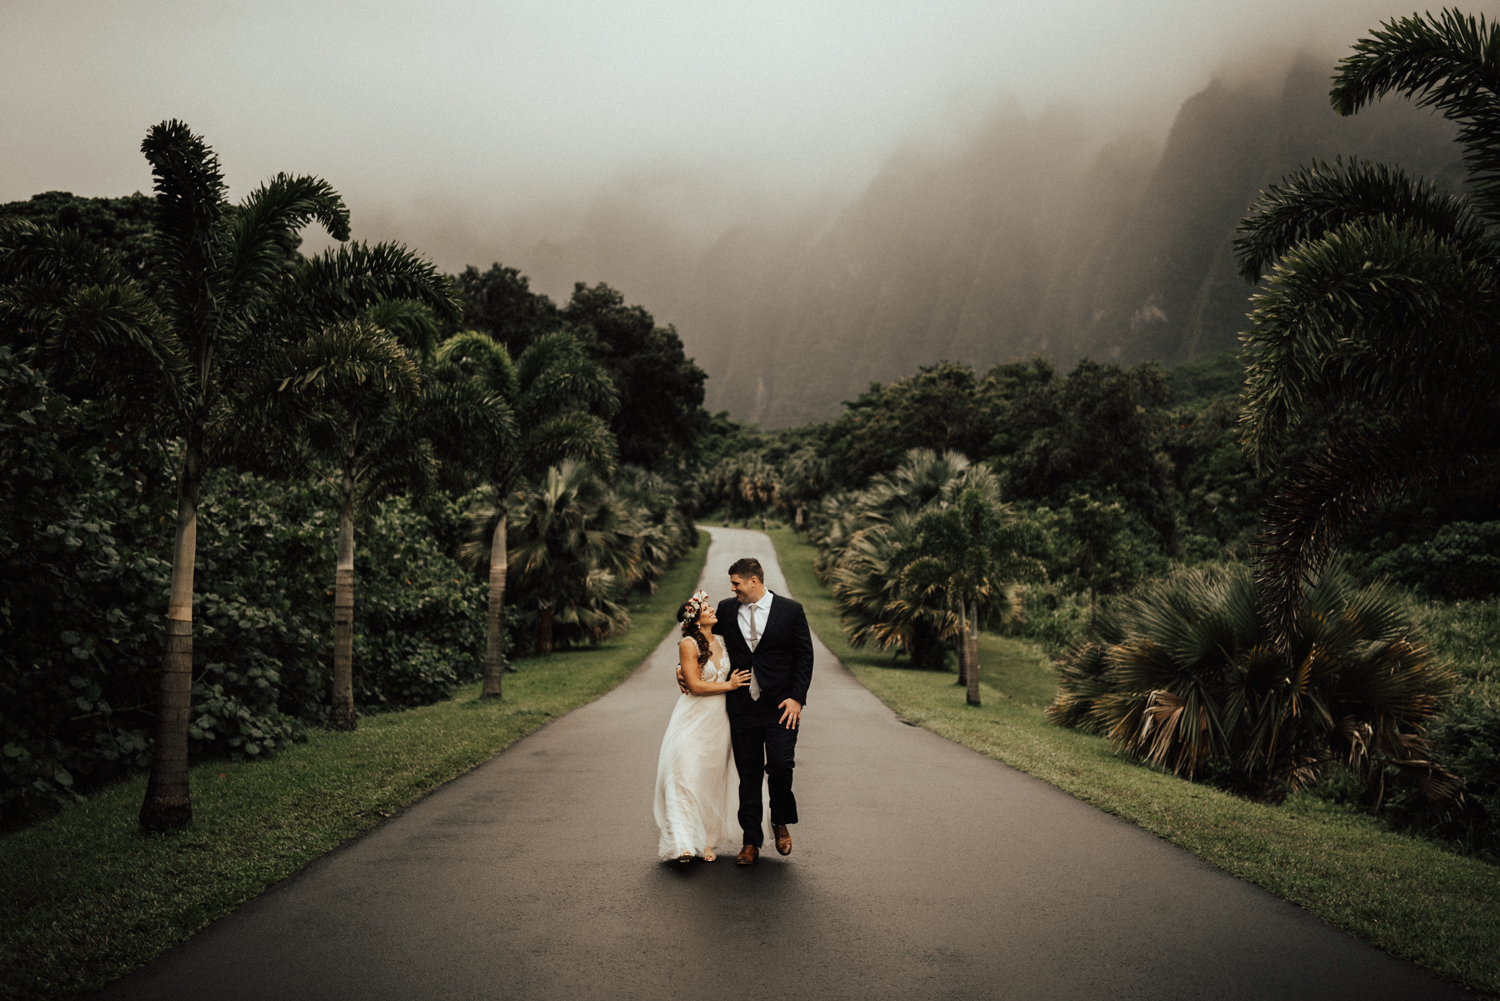 adventurous-Hawaii-elopement-photographers-33.jpg